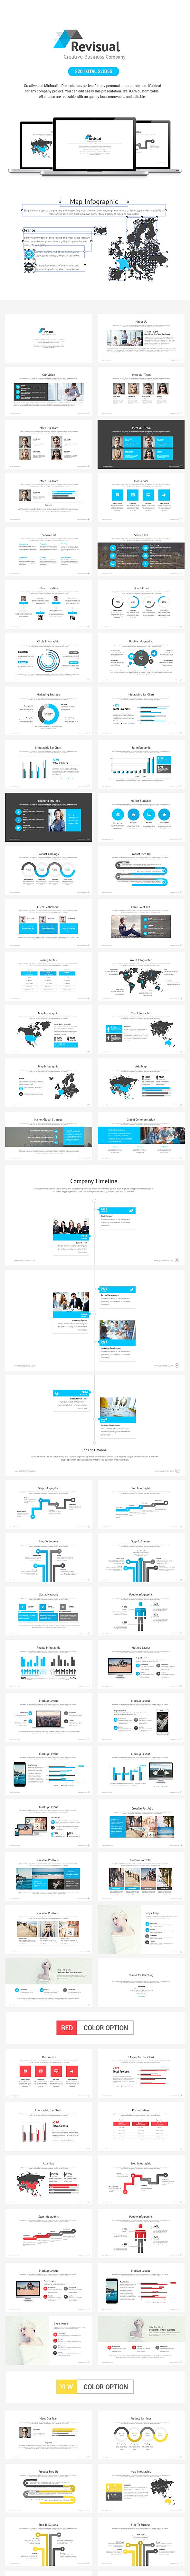 Revisual Keynote Template - Business Keynote Templates